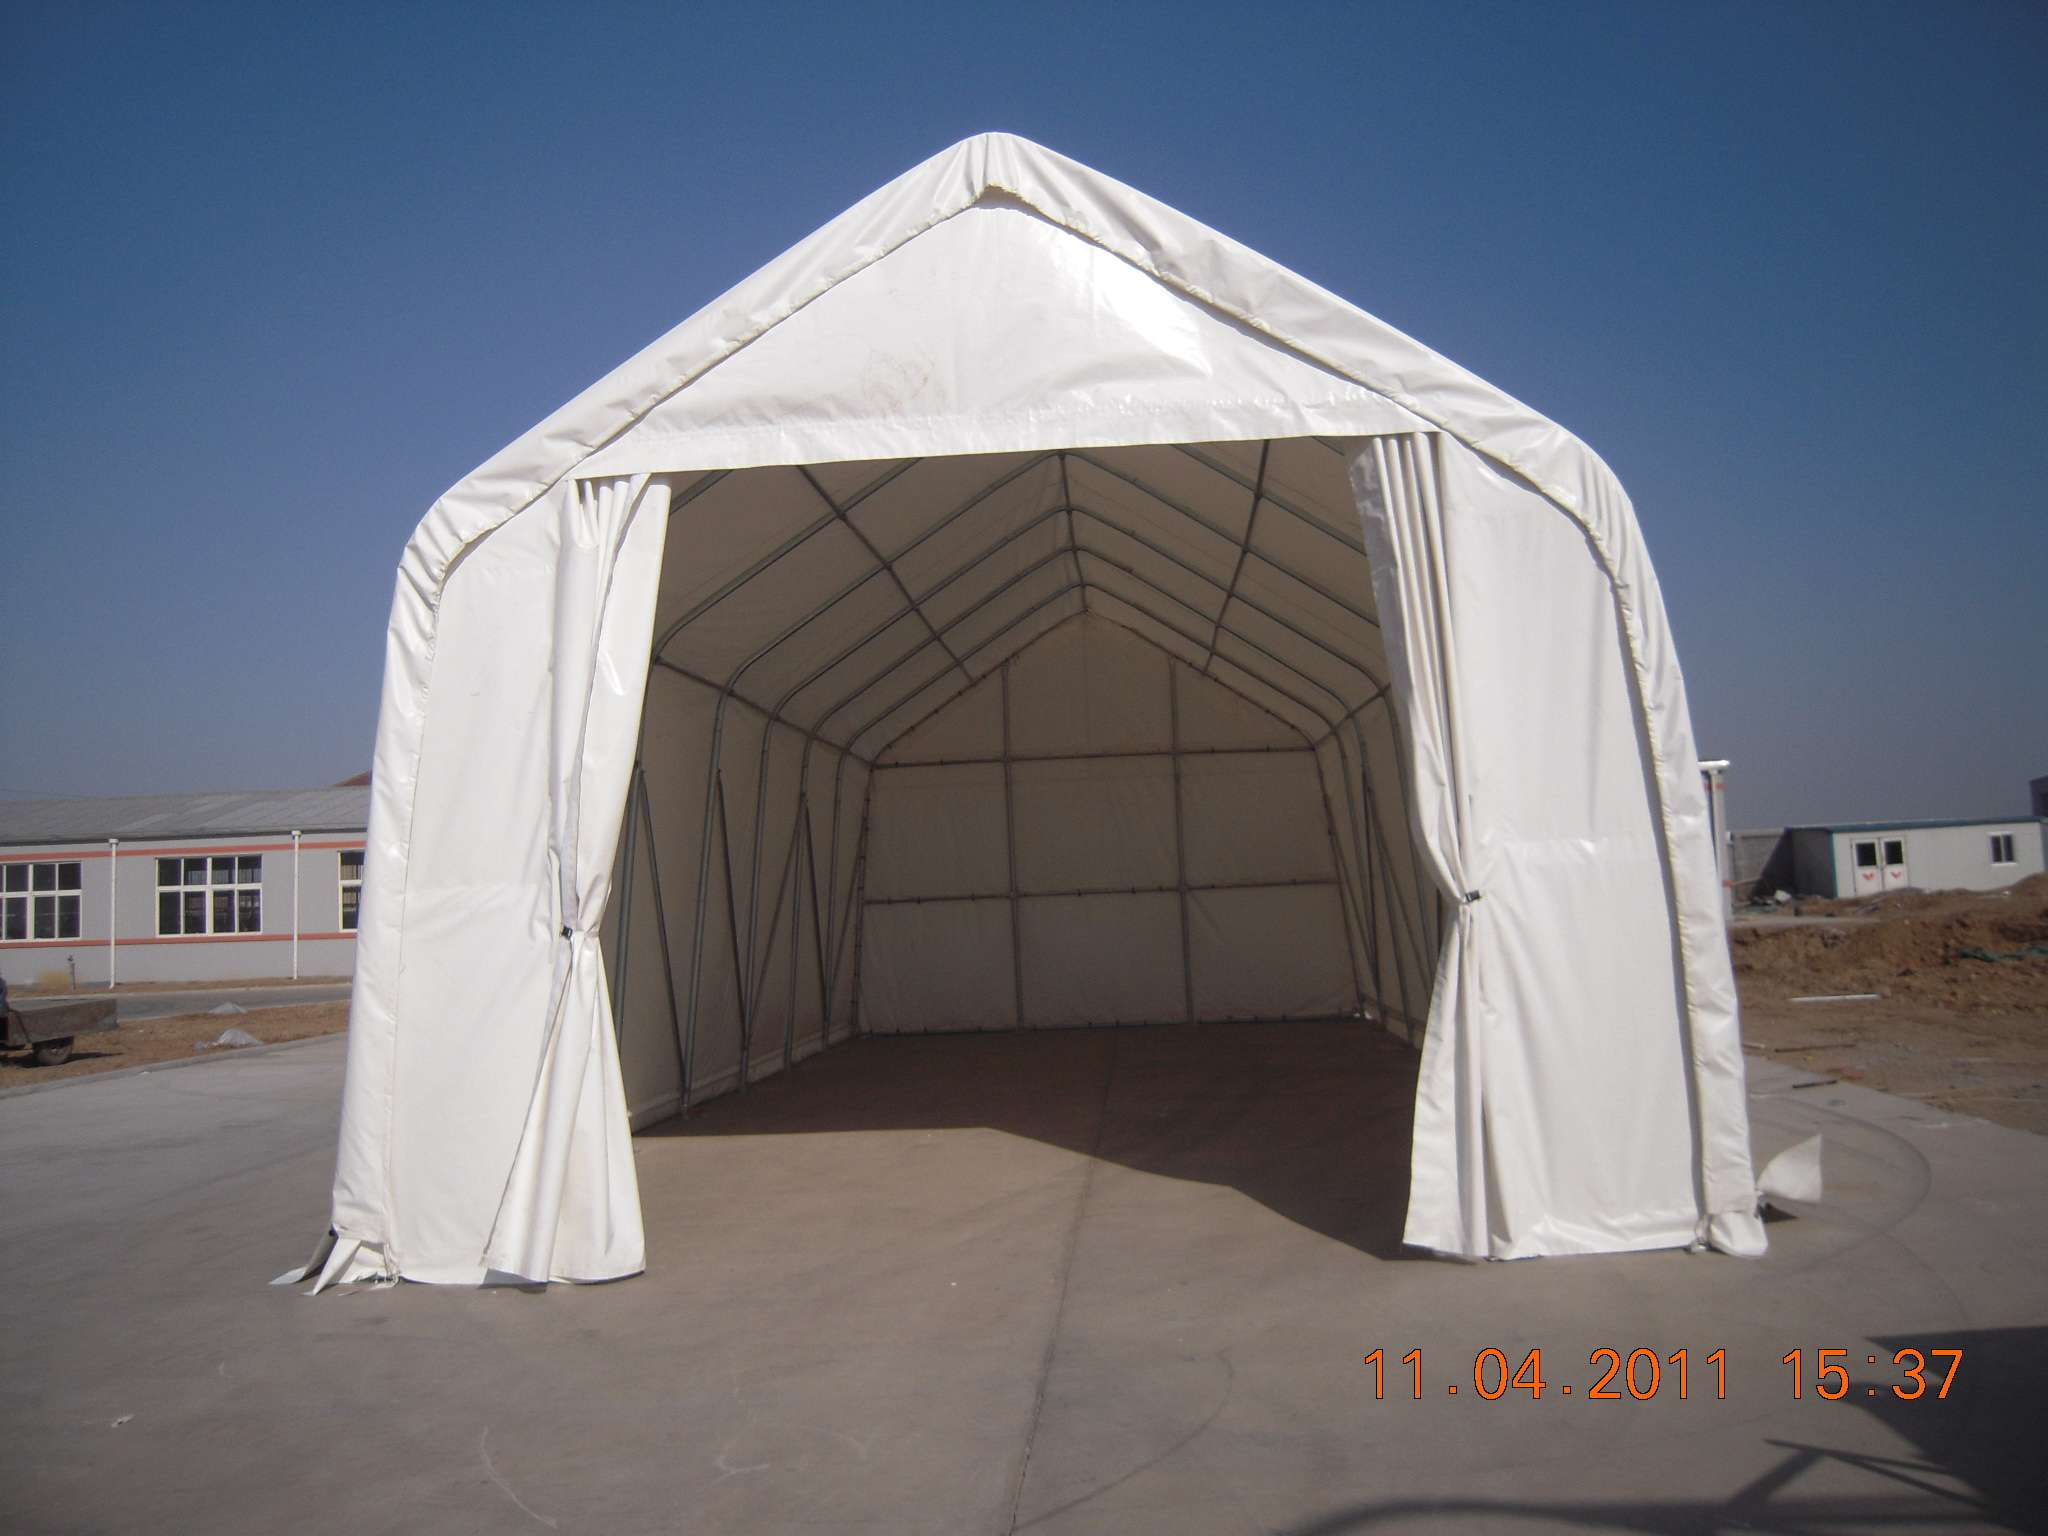 Sheltersportable garagestentshedsoutdoor storagelarge tents warehousecarportstorage tents & Sheltersportable garagestentshedsoutdoor storagelarge tents ...